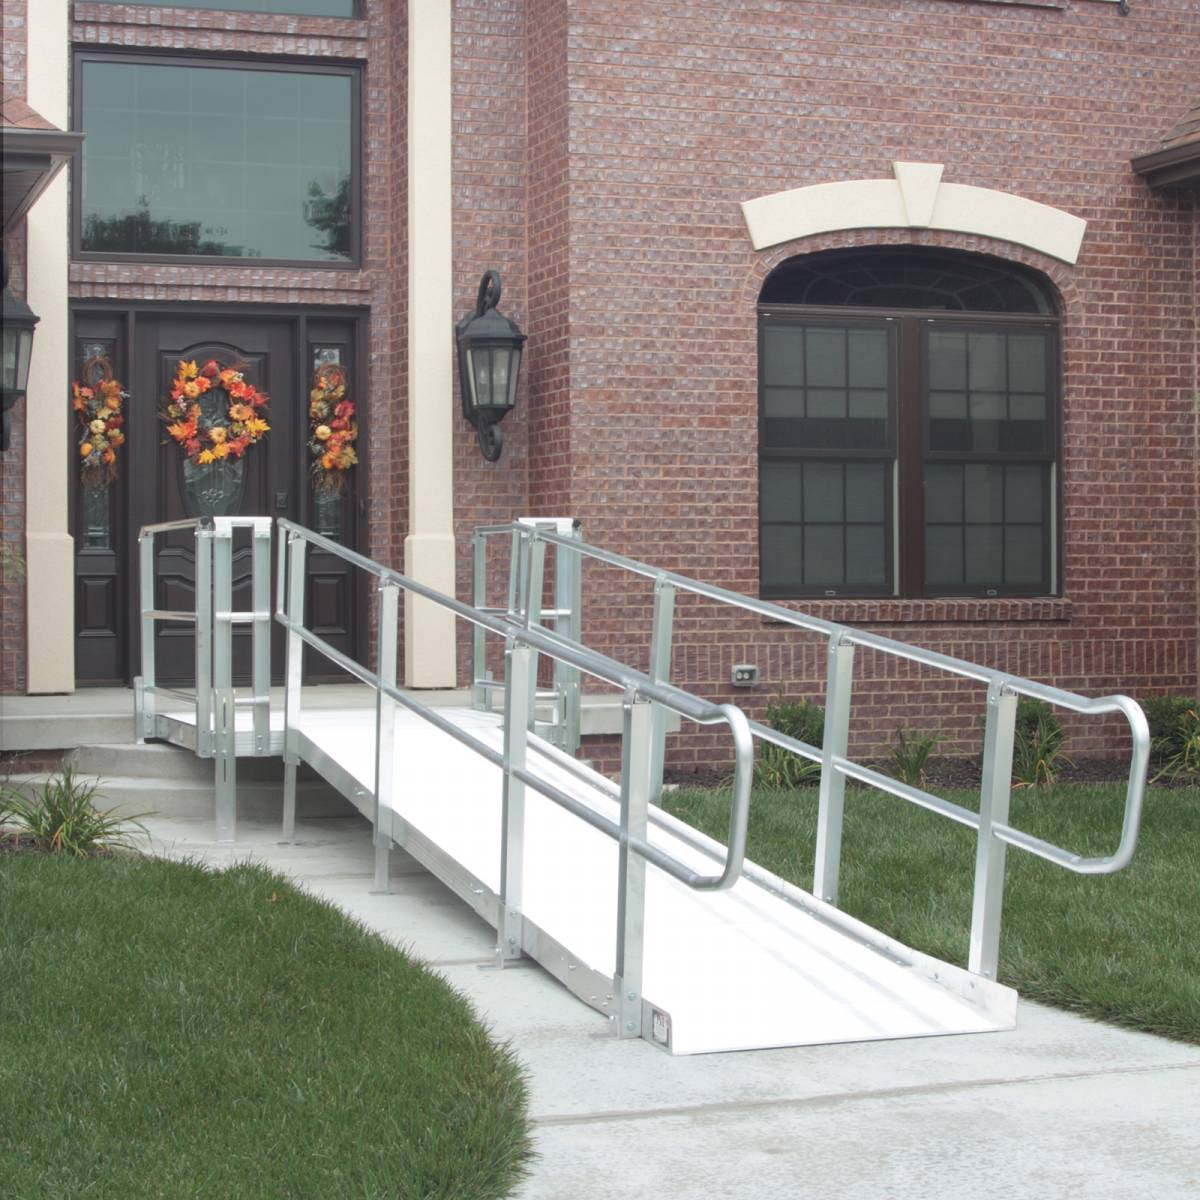 Pvi modular xp ramp systems free shipping for Prefab wheelchair ramp